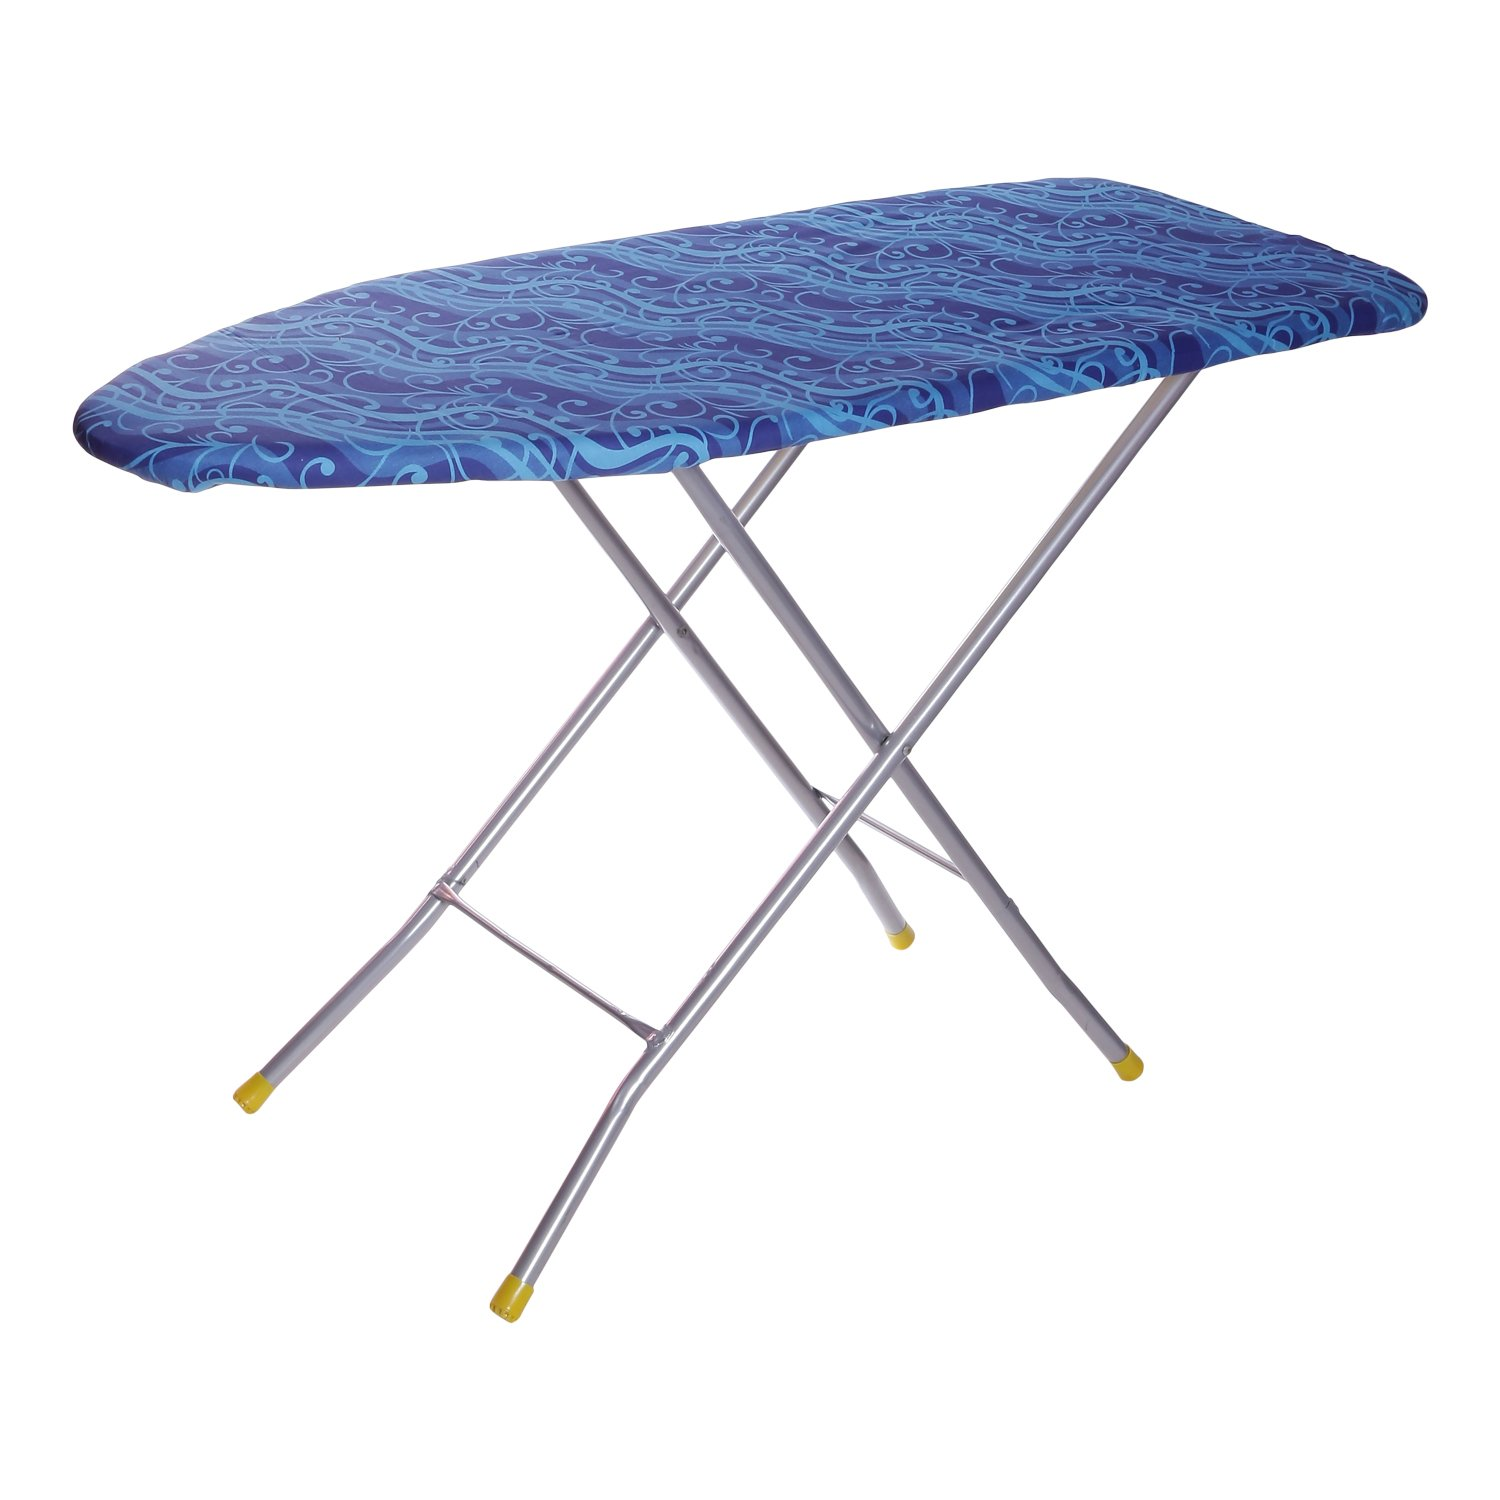 8f6c5d81cc9 Buy Archana Wood Folding Ironing Board (48 x 18 inch) - Multicolour Online  at Low Prices in India - Amazon.in